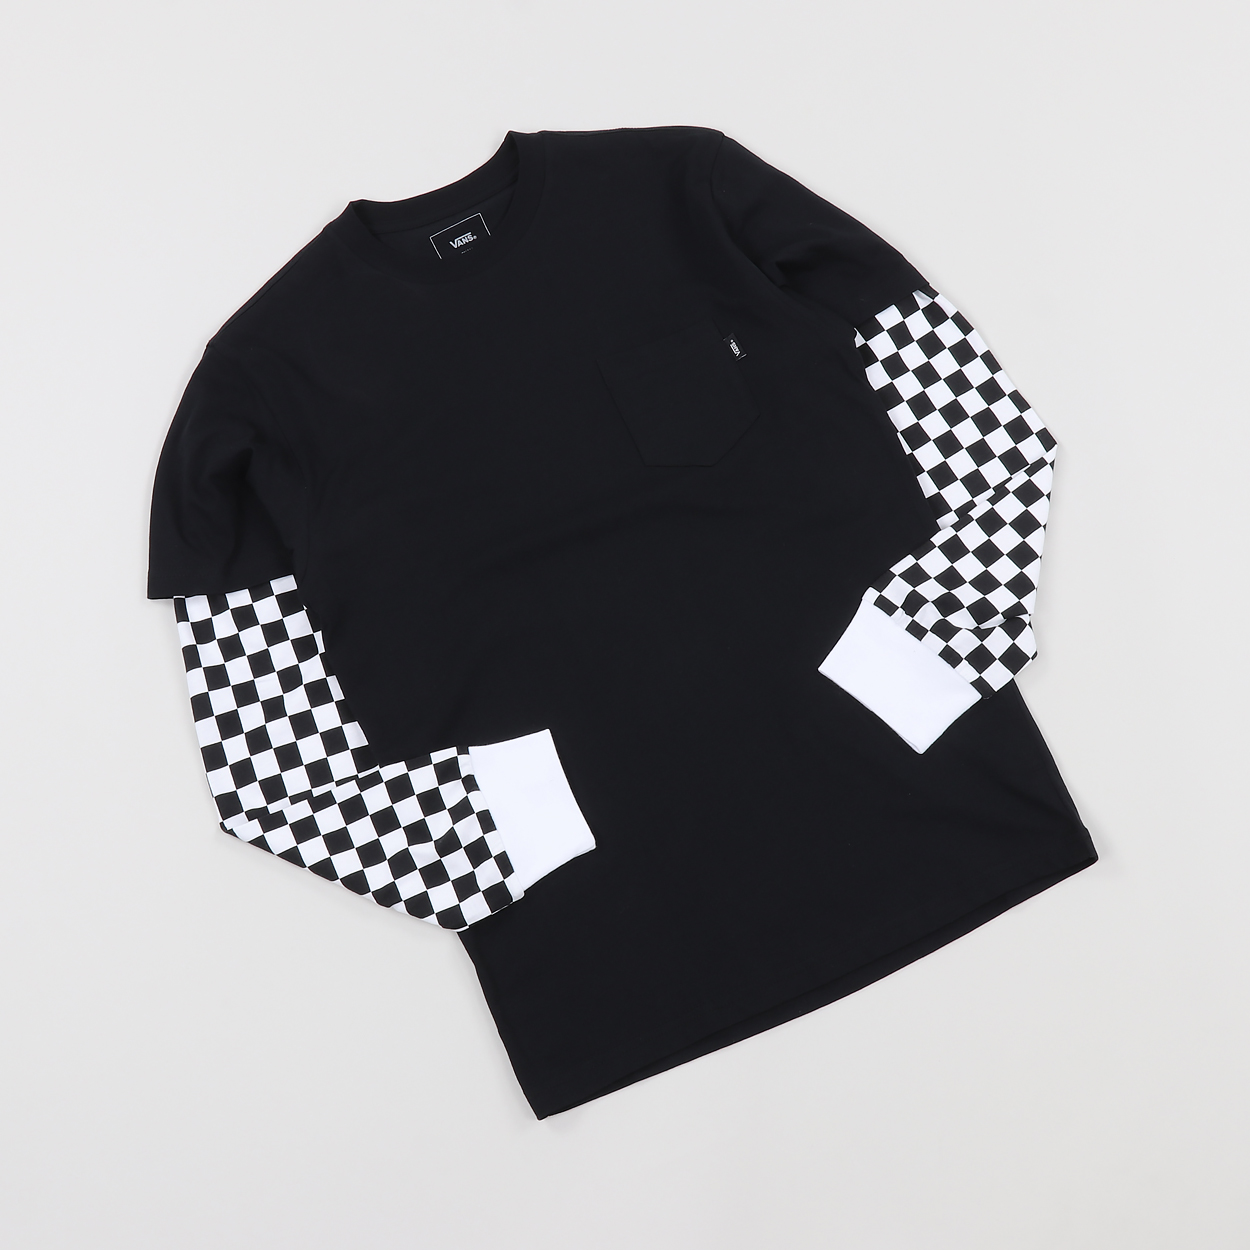 4c552926d0c308 The Vans Checker Long Sleeve T Shirt features a singular pocket to the  chest, a crew neckline and checker board detailing to either sleeve.